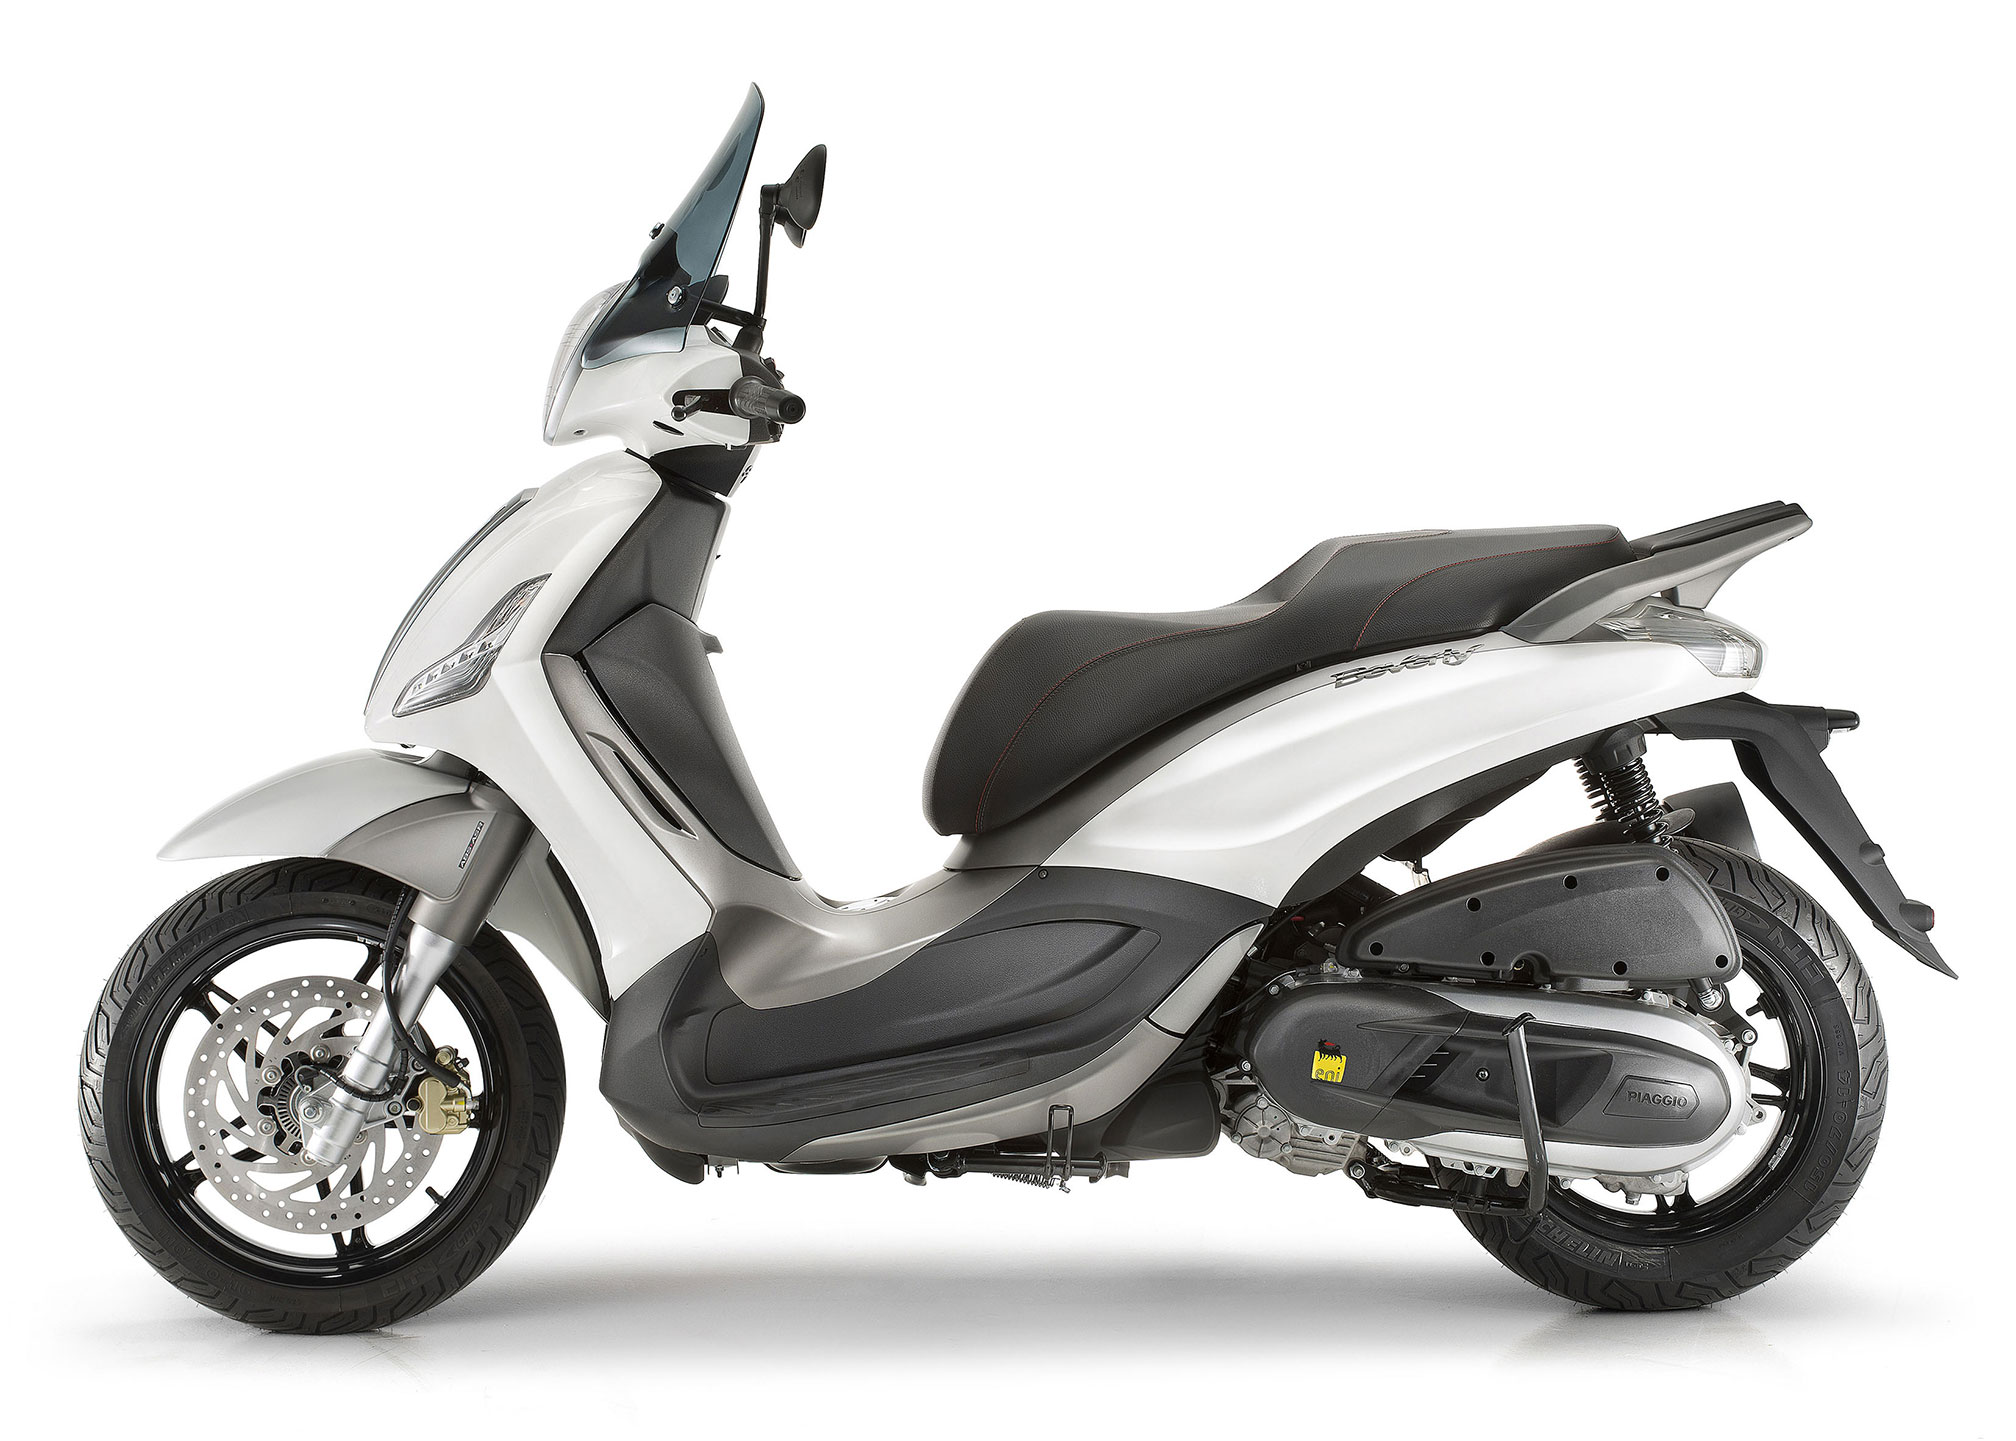 Piaggio BV350 scooter review and video - Motorbike Writer